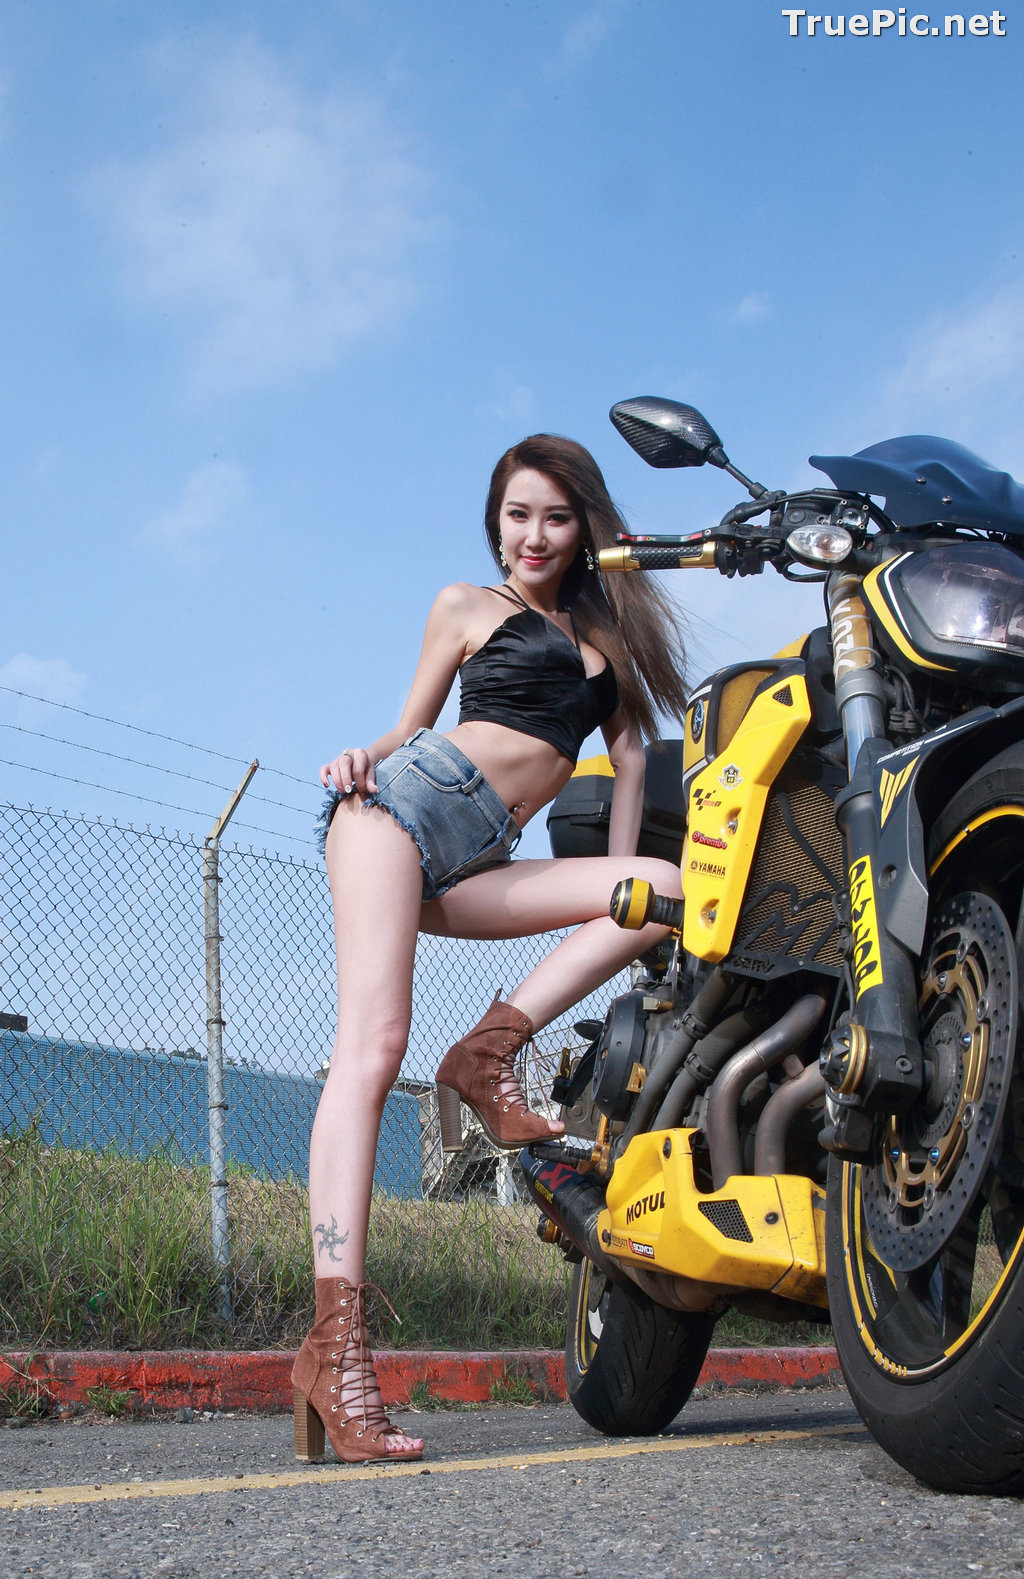 Image Taiwanese Model - Suki - Beautiful and Lovely Motor Racing Girl - TruePic.net - Picture-9